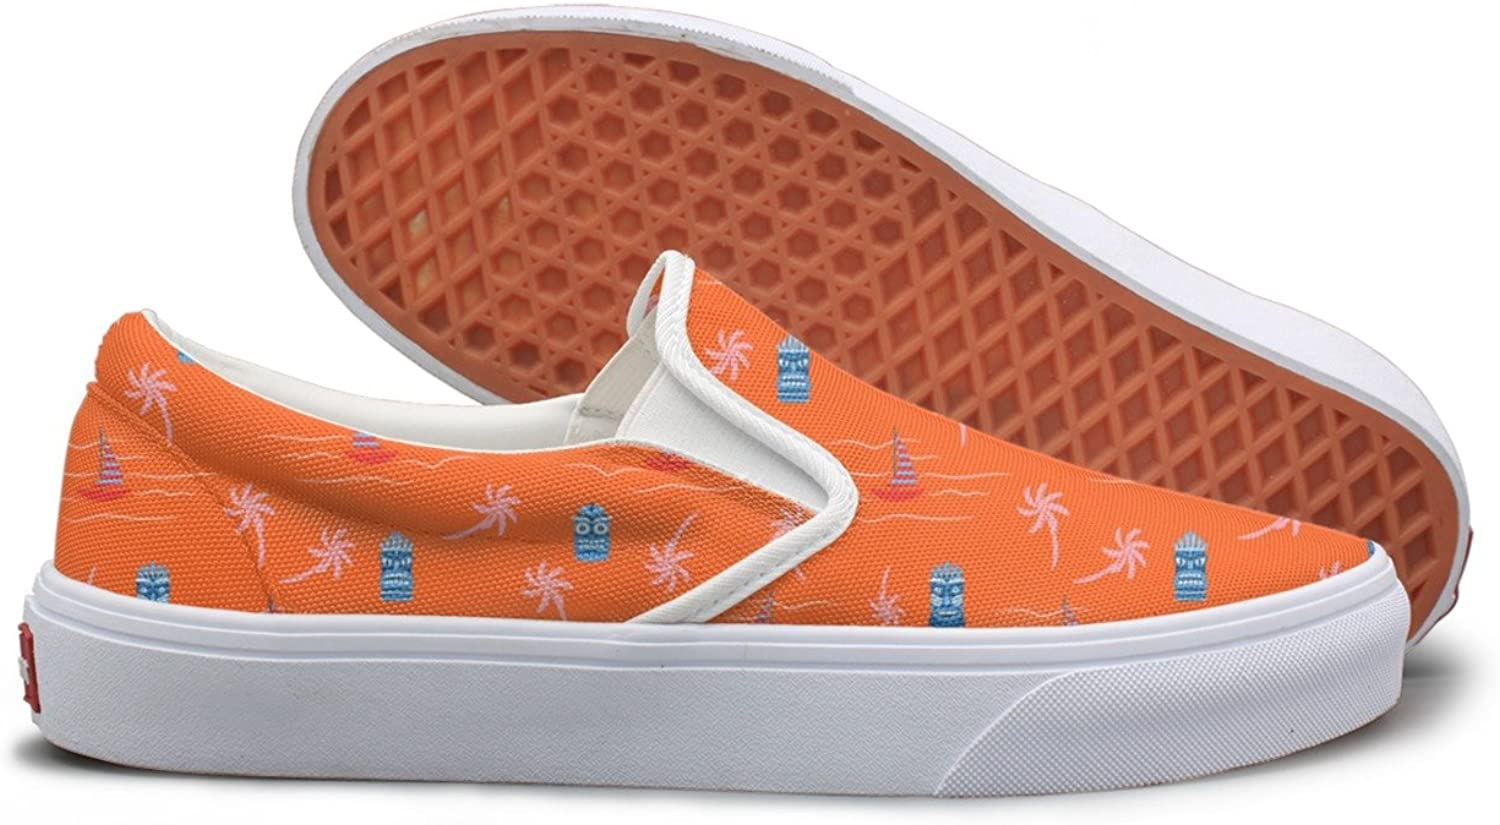 Casual orange Hot colors Aloha Hawaii Ocean Women Girls Canvas shoes